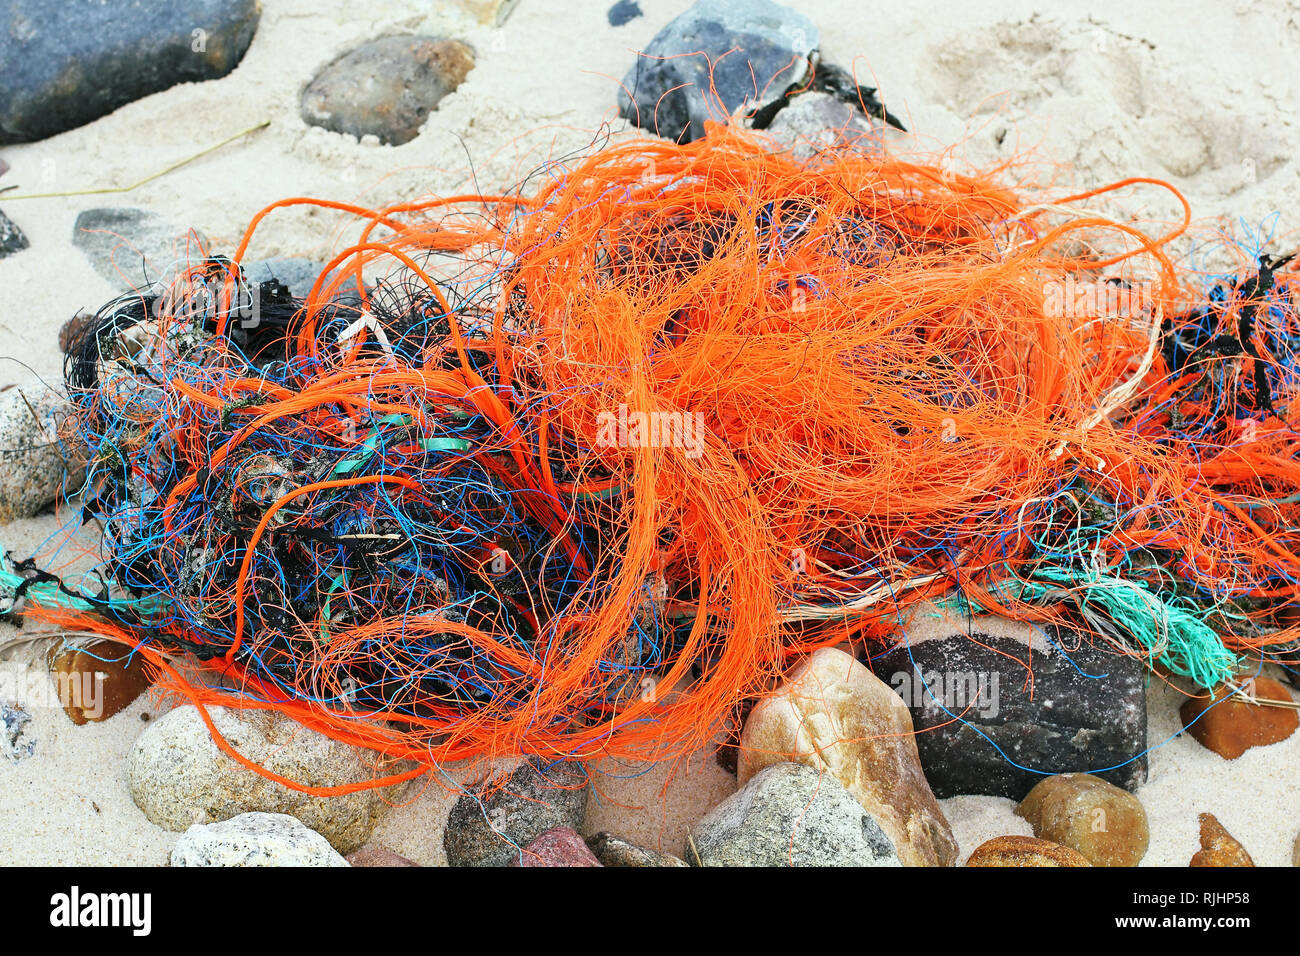 Plastic waste on the beach - Stock Image